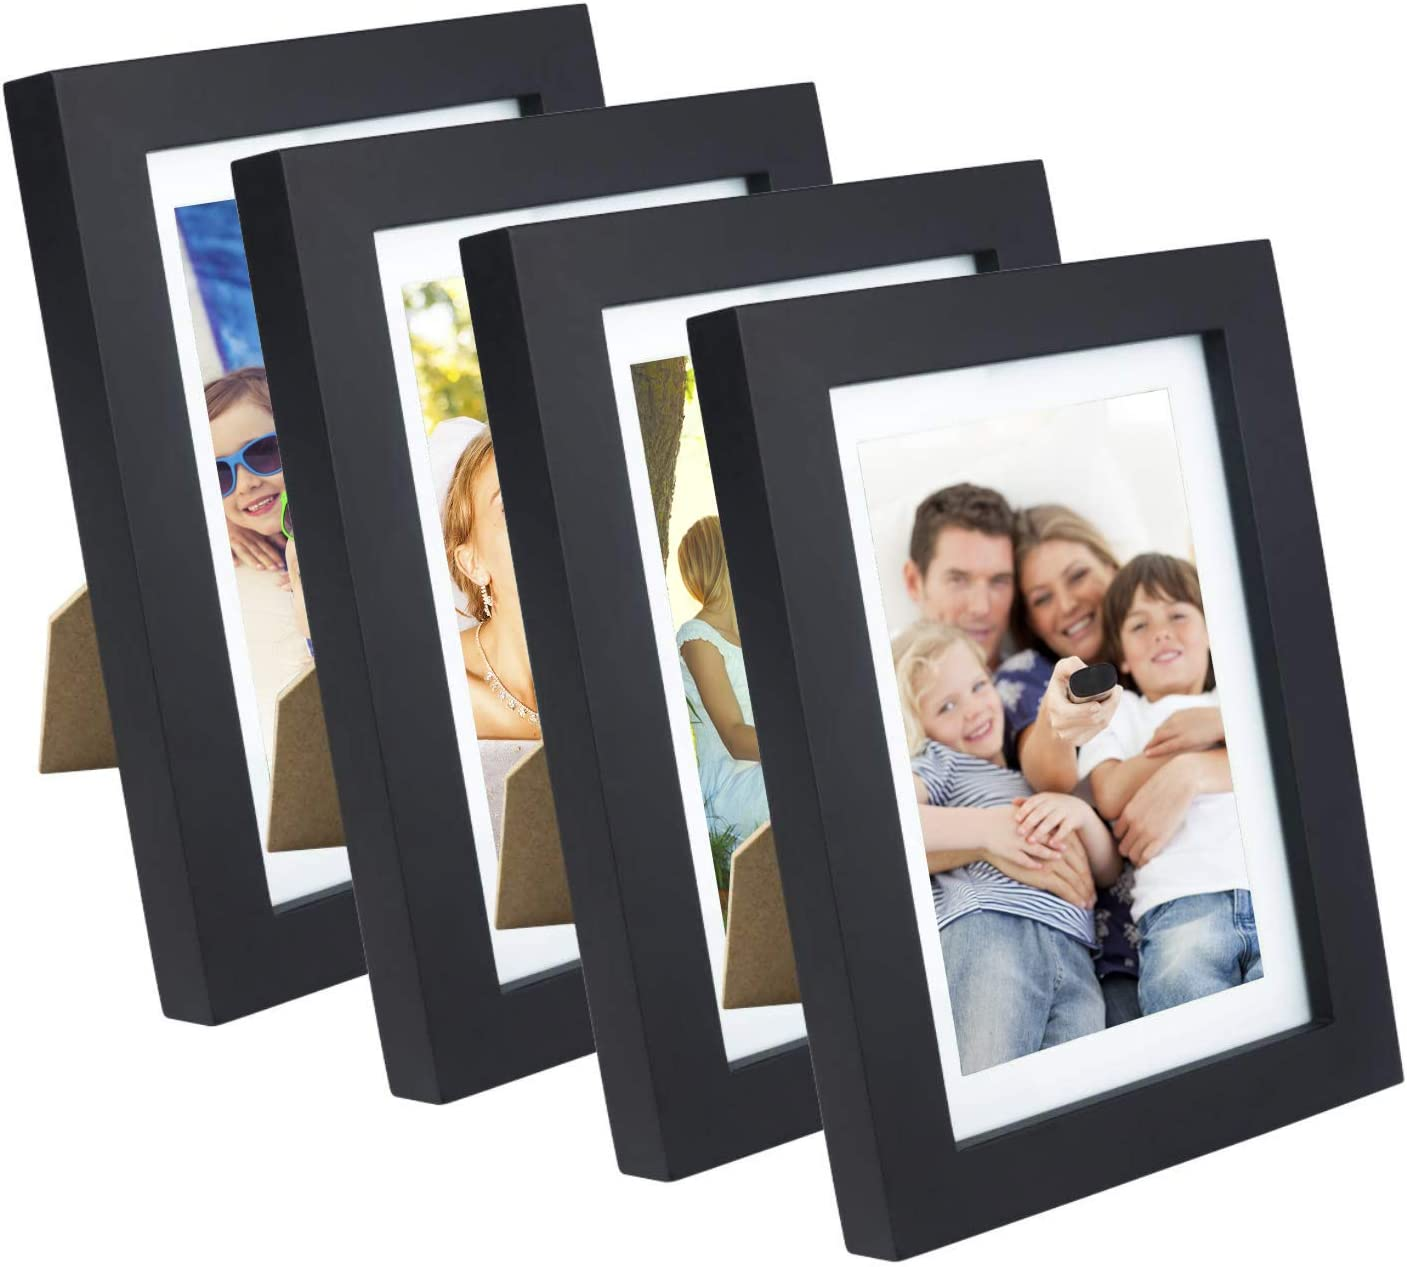 XUFLY 4Pcs 5x7 Real Glass Wood Frame Black, with Mat Fit 4x6 inch Family Photo, Desktop On Wall Vertical Horizontal Office Decoration London Red Bus Moon Eclipse Sea Sky Jetty (10 Set Pictures) (37)